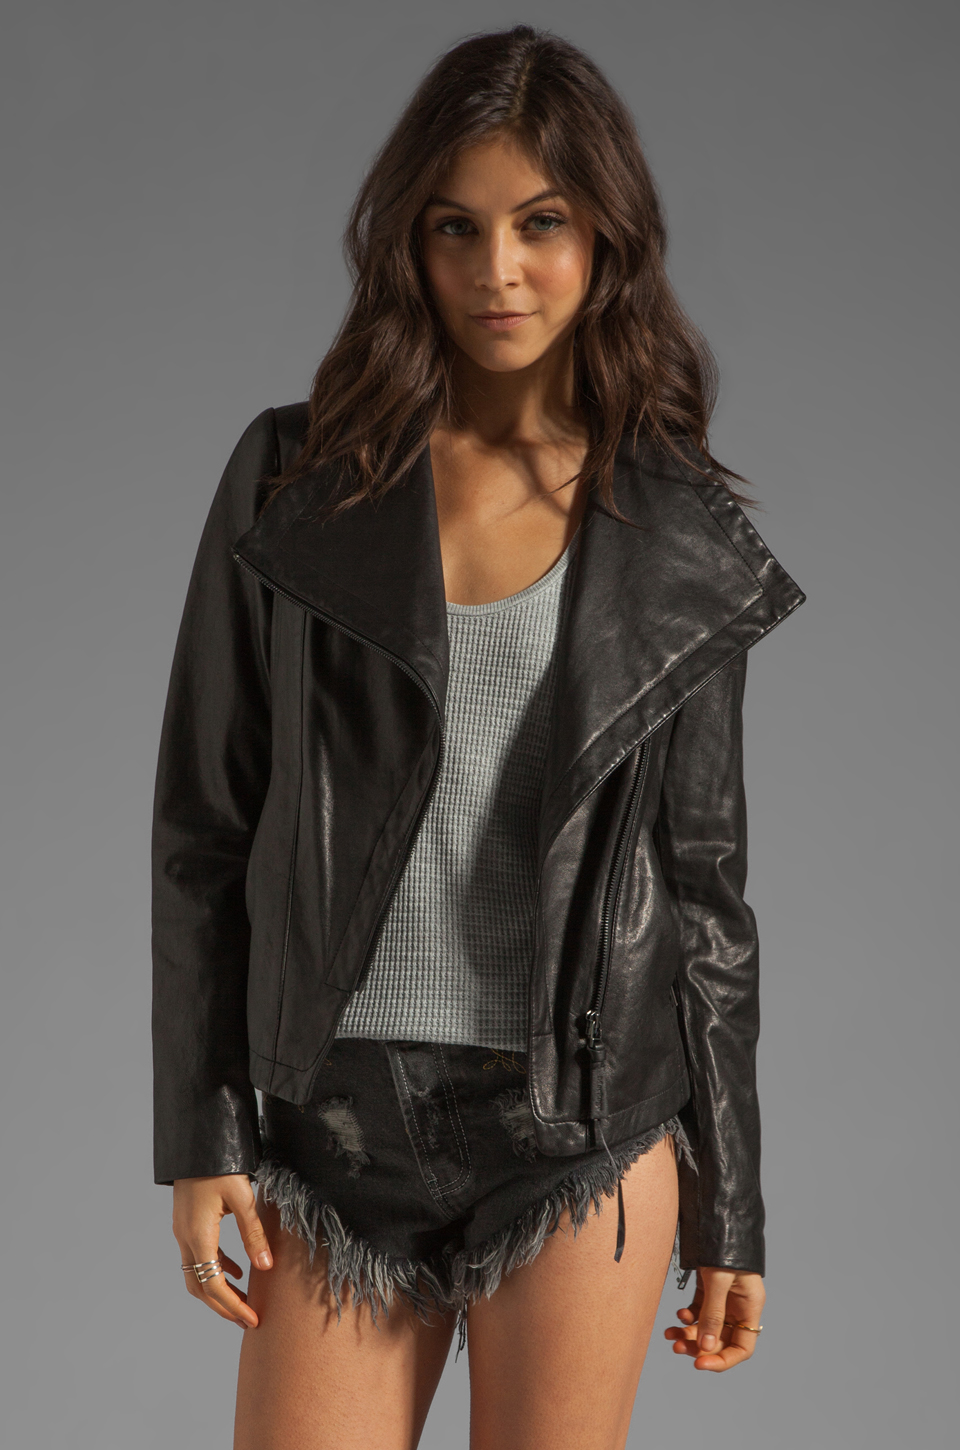 Mackage Tribeca Classic Leather Jacket in Black